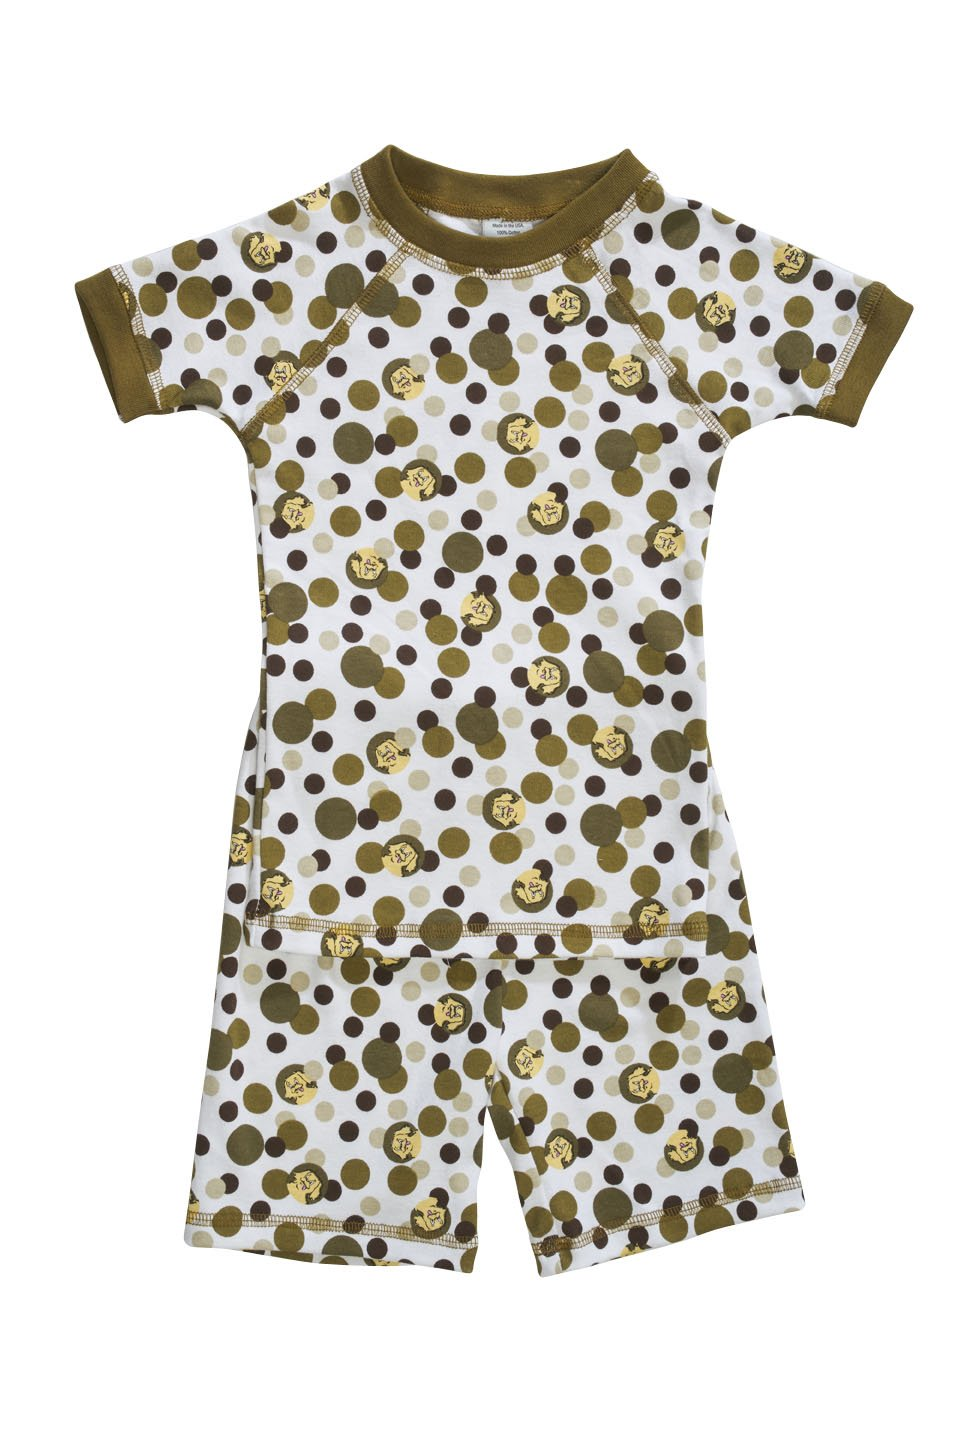 Camo themed organic kids pajamas